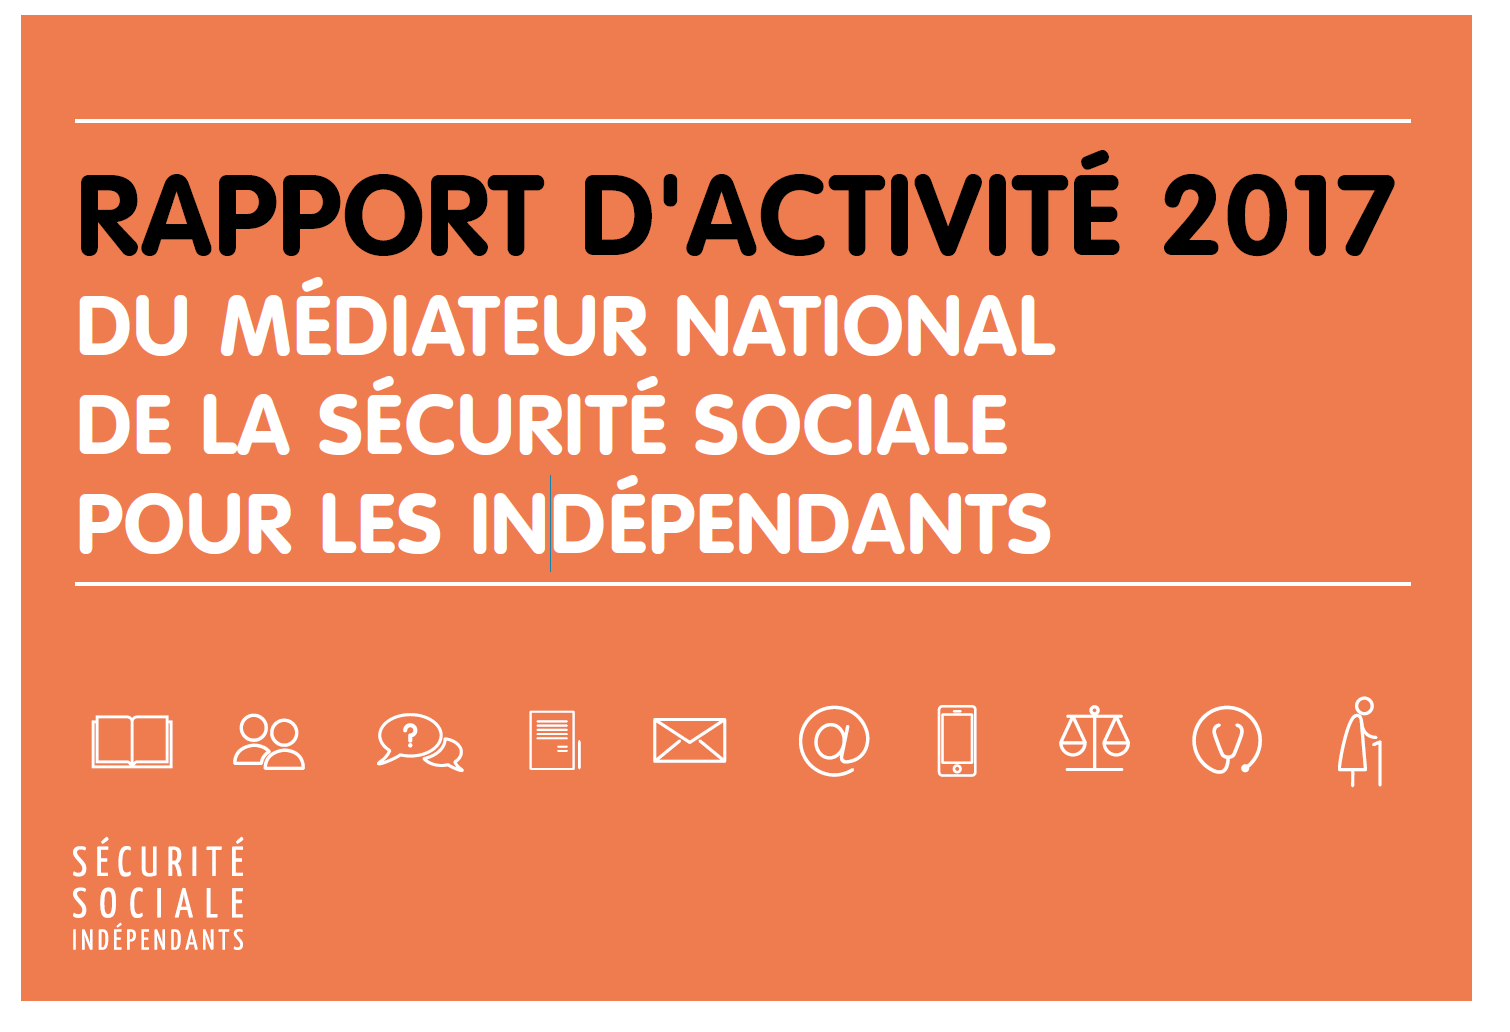 Le Mediateur National De La Securite Sociale Des Independants Publie